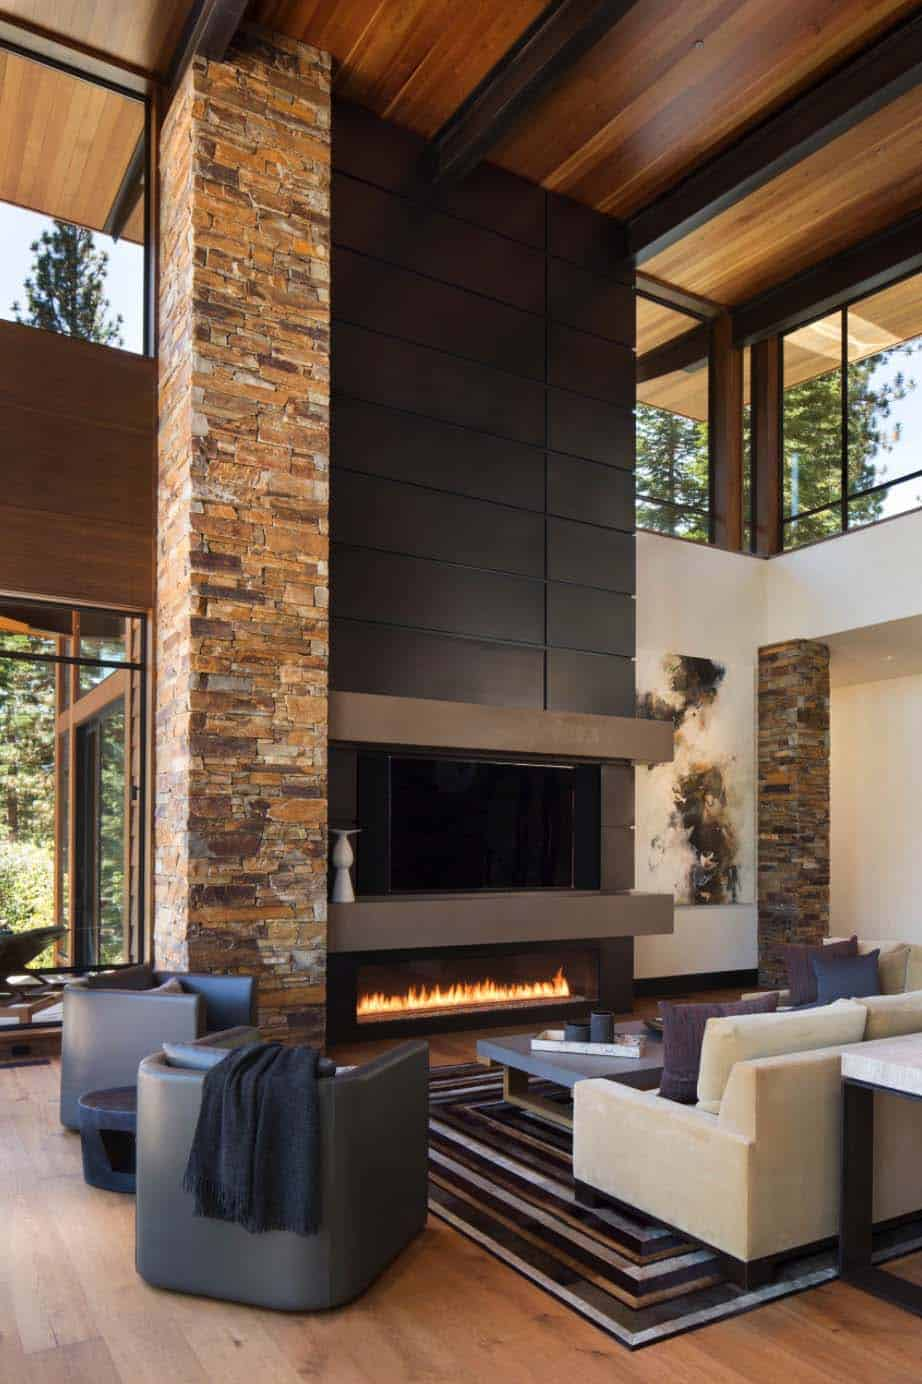 Fabulous mountain modern retreat in the High Sierras on Interior:ybeqvfpgwcq= Modern House Ideas  id=90440